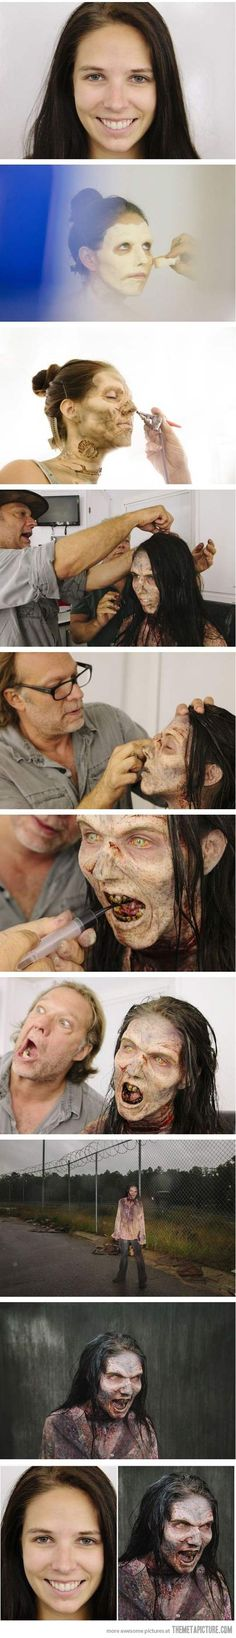 the Making of a zombie from 'The Walking Dead' amazing special fx gory makeup avant garde